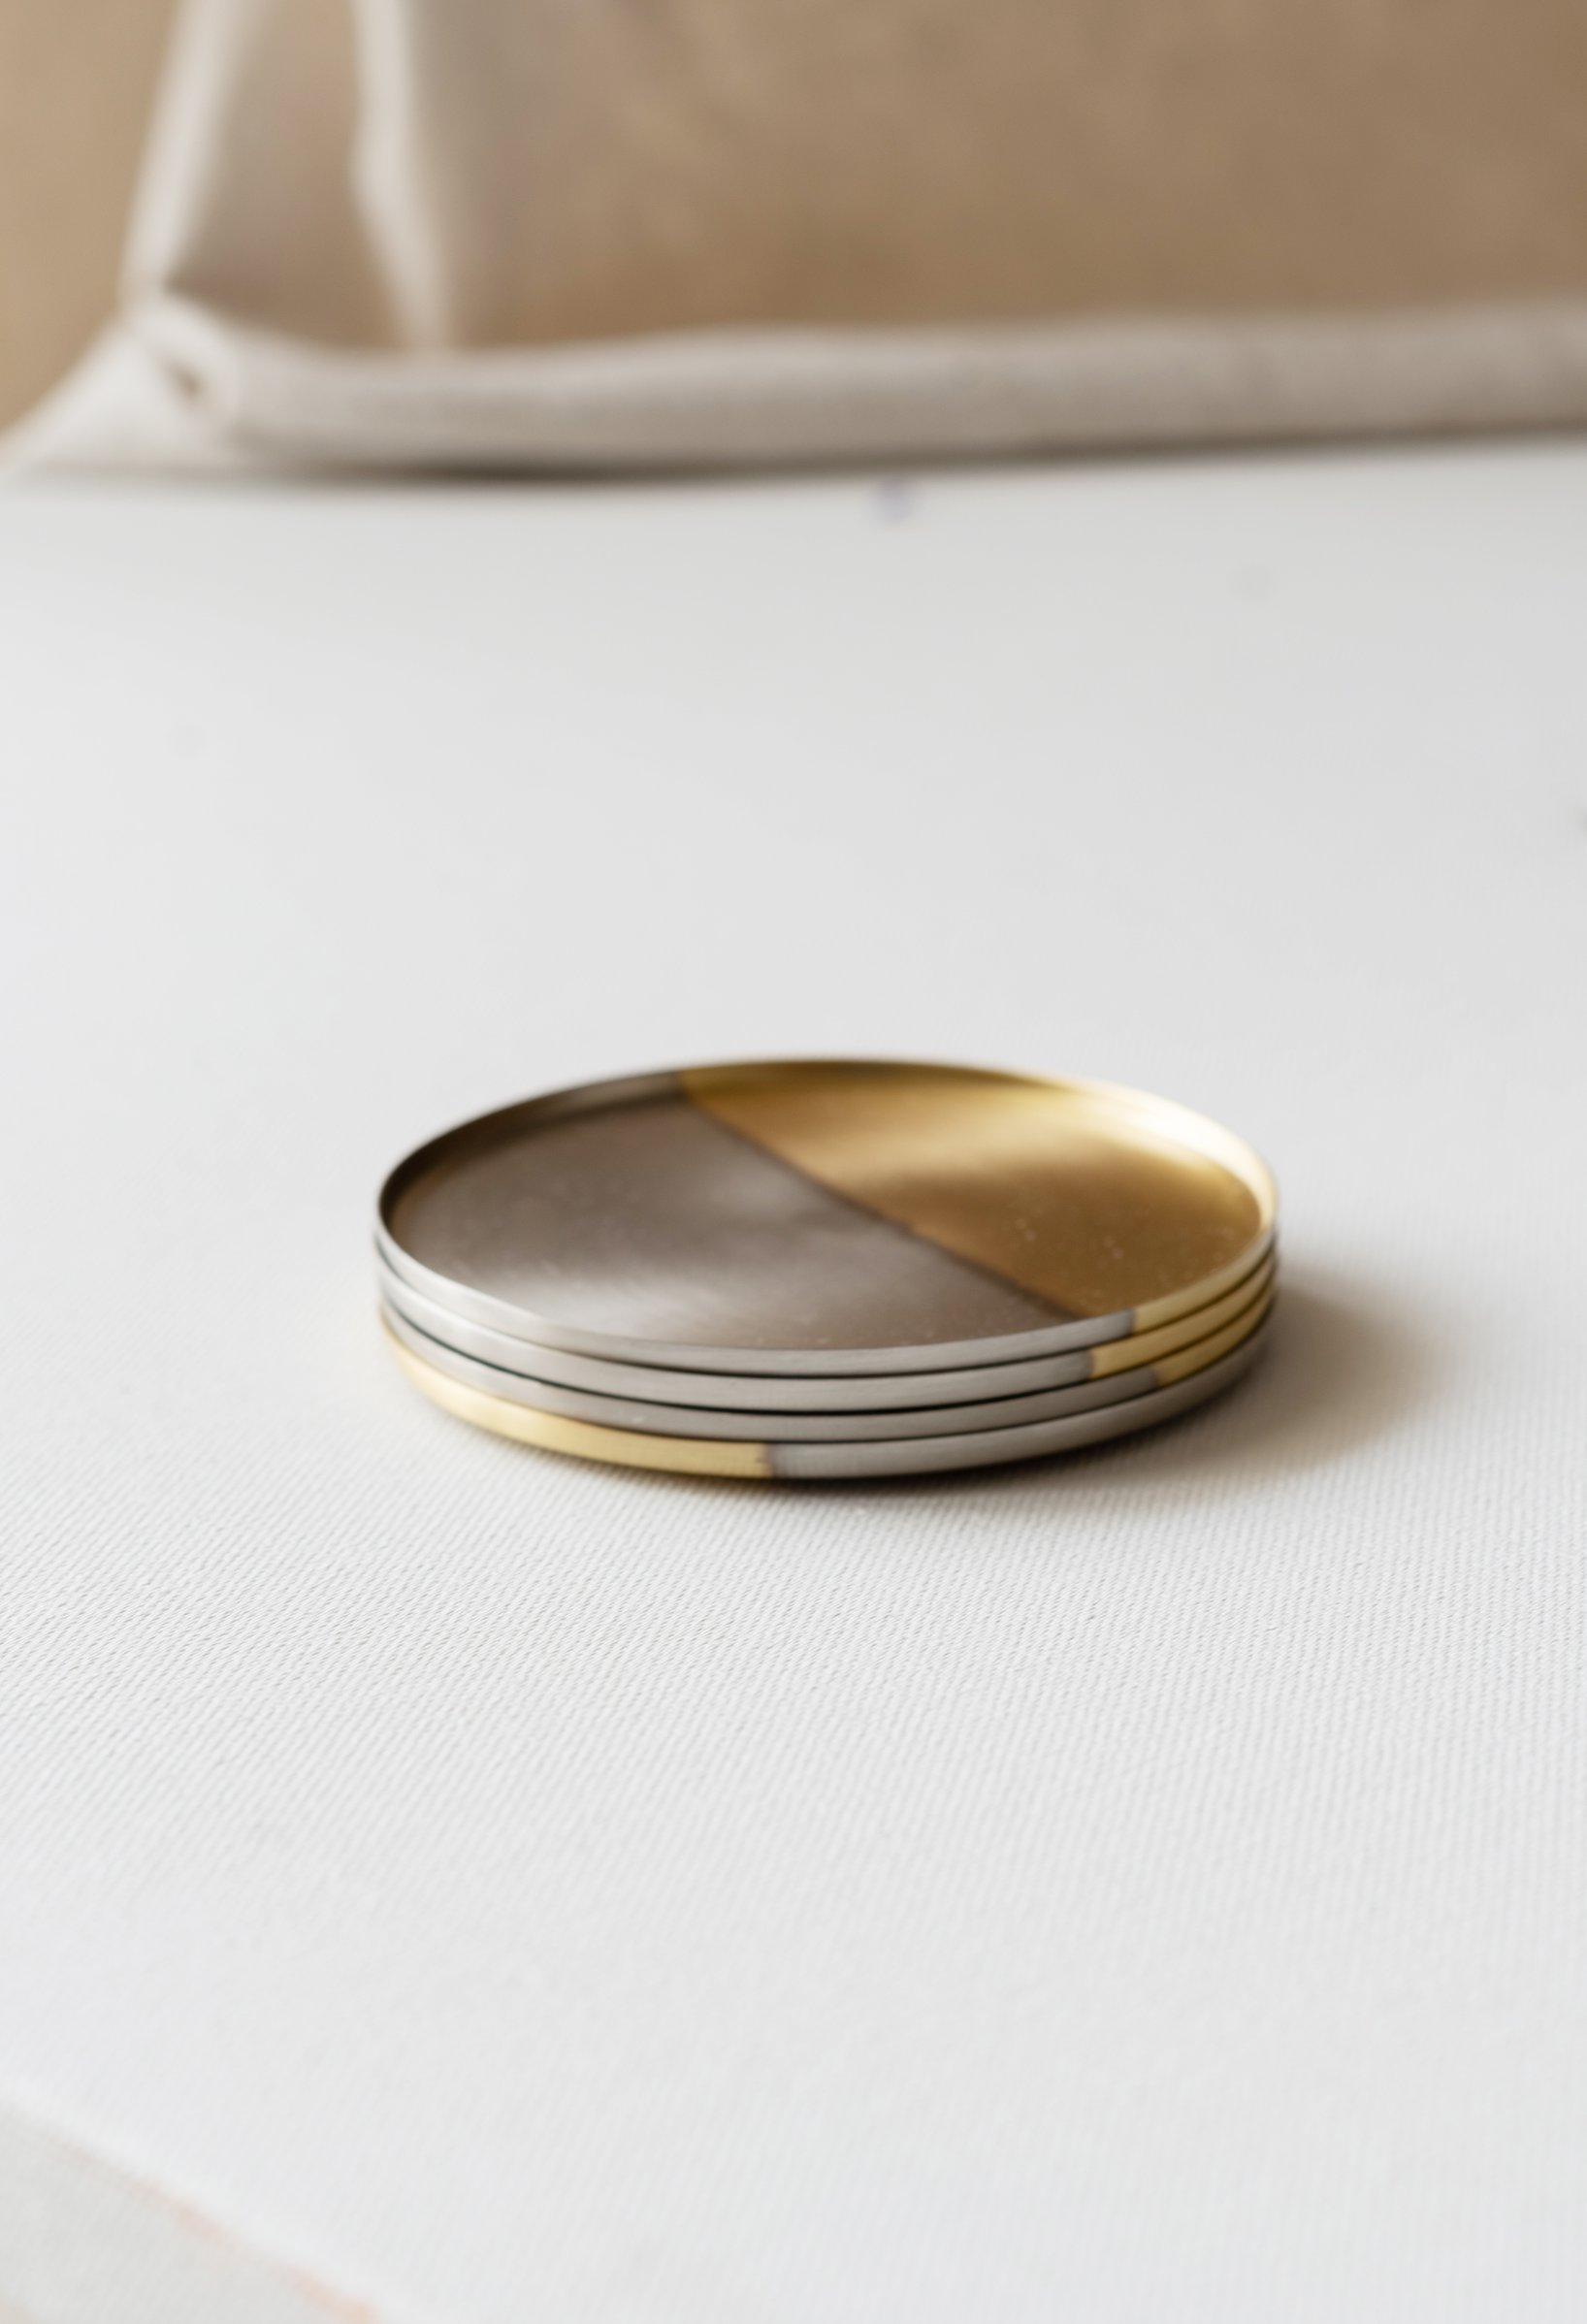 A set of 4 clean and minimal two-tone coasters to add a hint of luxury to your everyday life. These elegant brass coasters are made from a single sheet of brass in our foundry using pure metals and alloys that will oxidise over time. Each one is backed with natural cork to protect your delicate surfaces.